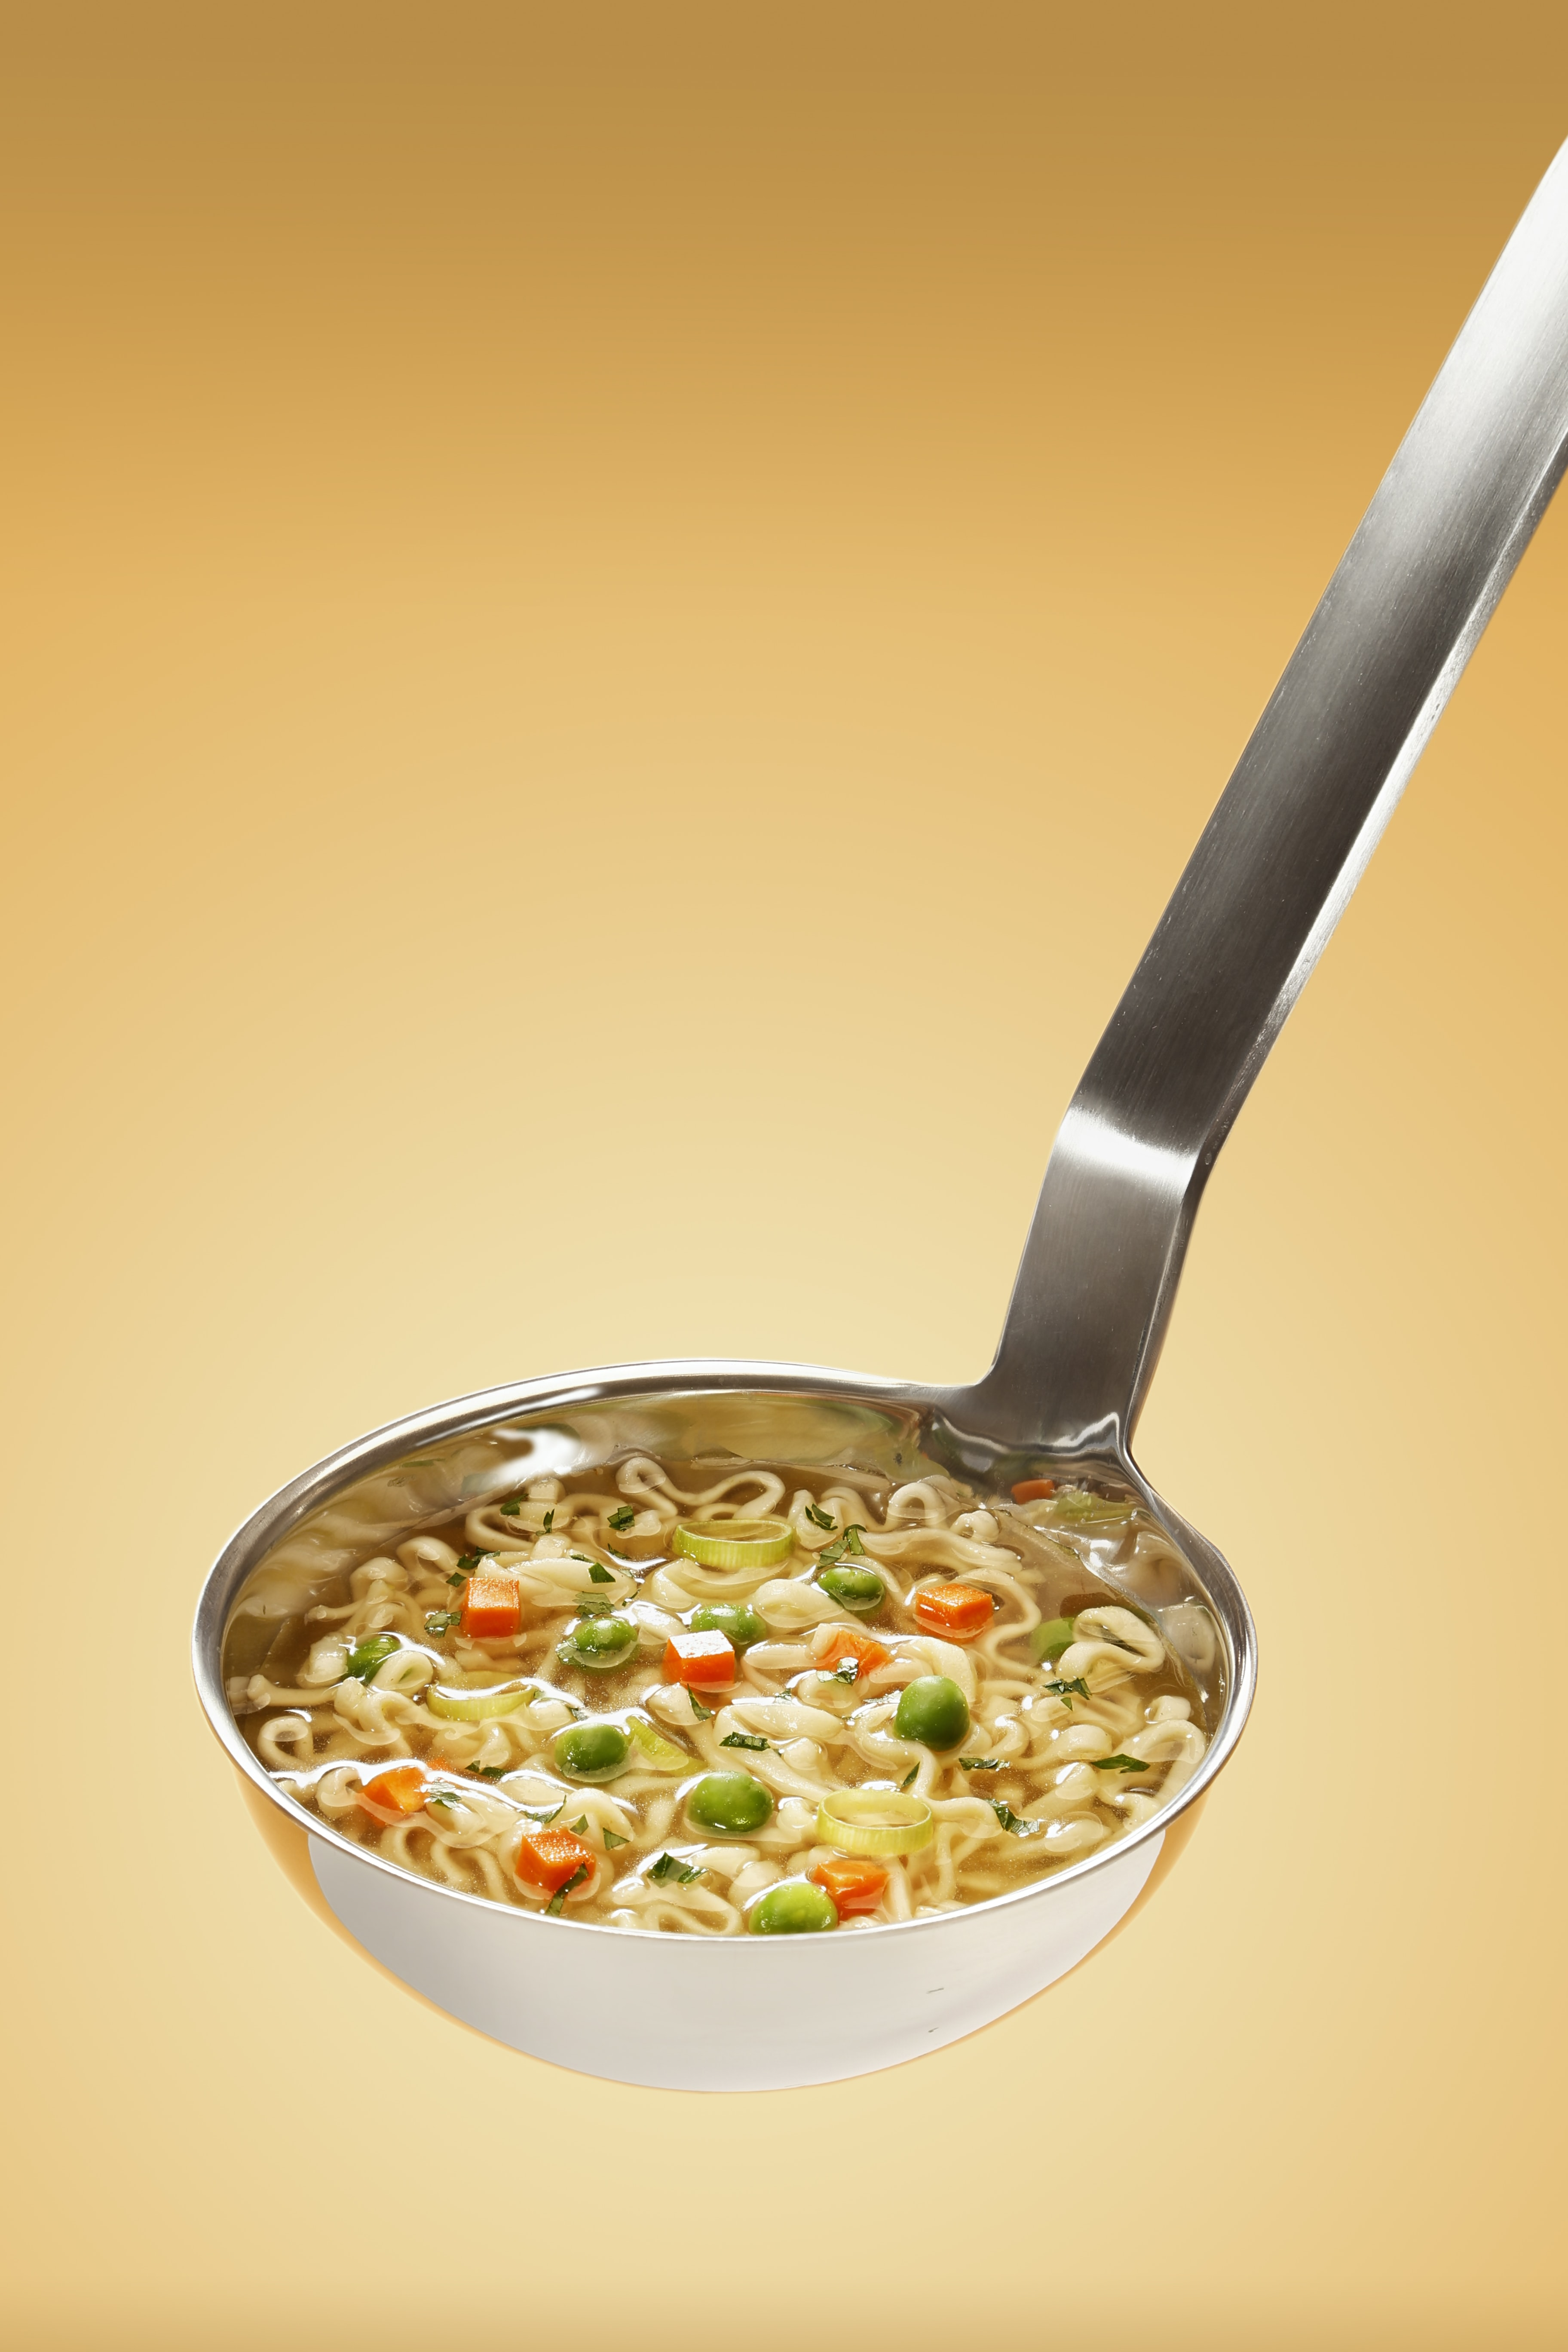 Ladle full of vegetable soup with carrots, peas, and ramen noodles